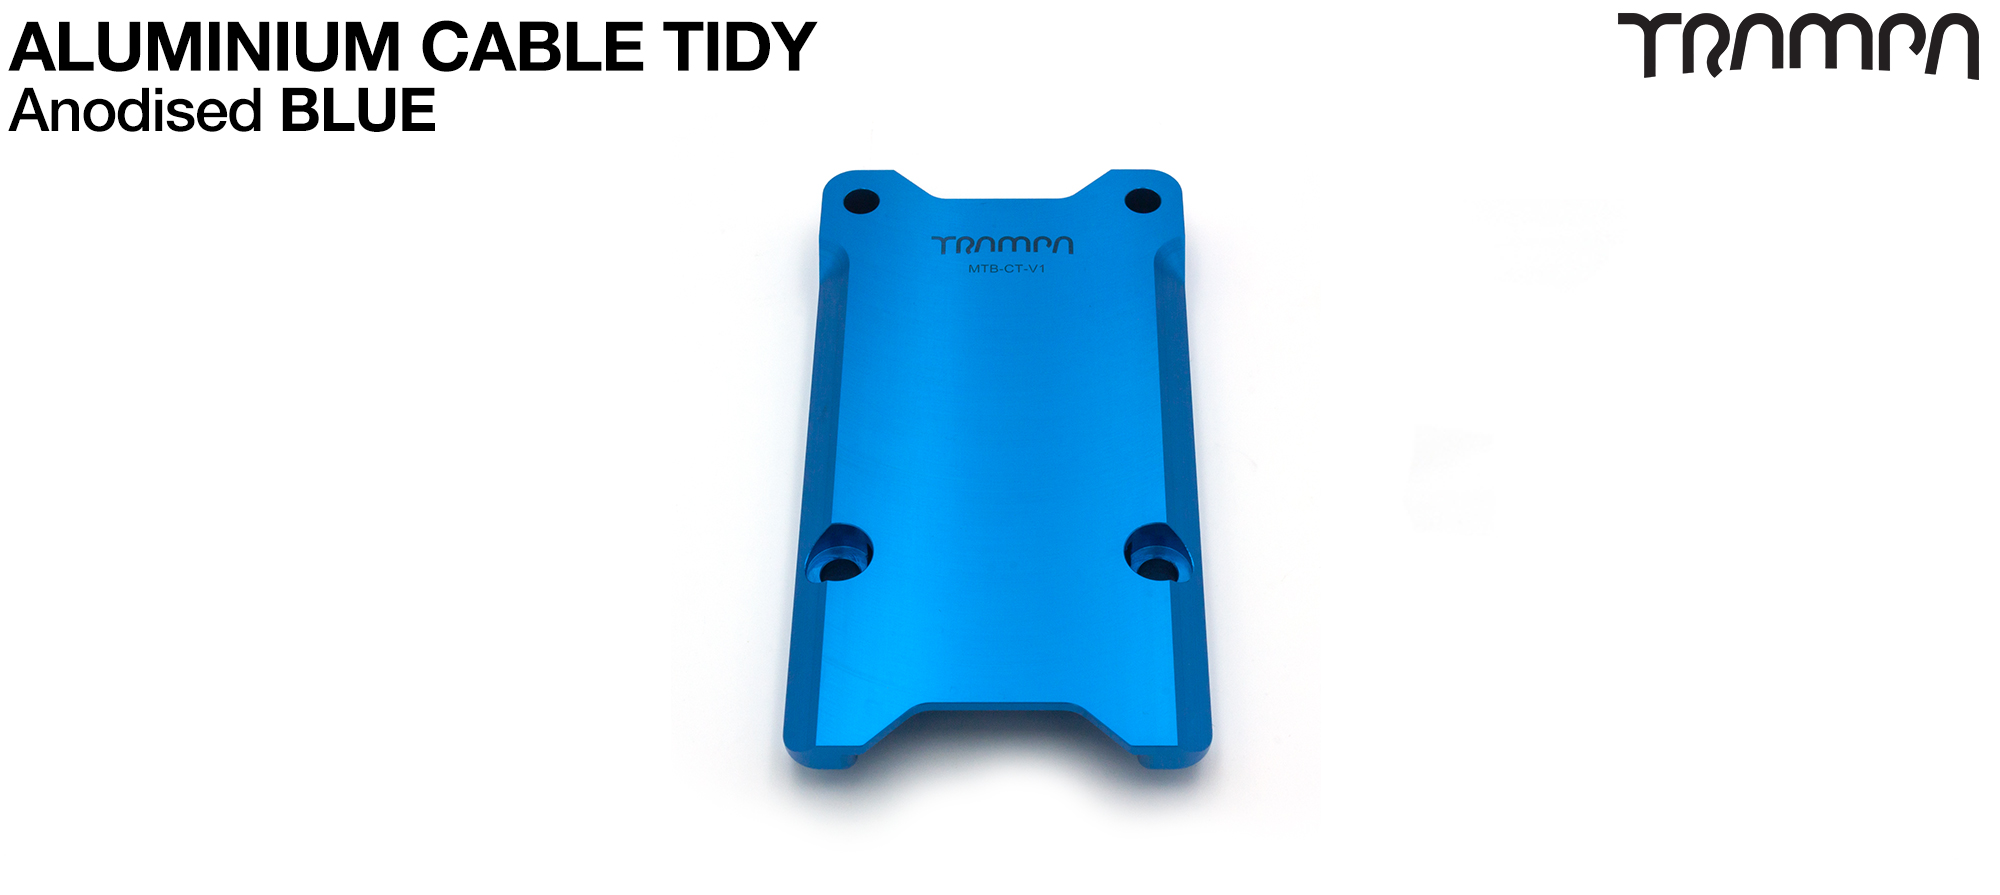 Anodised Aluminum Cable Tidy - BLUE